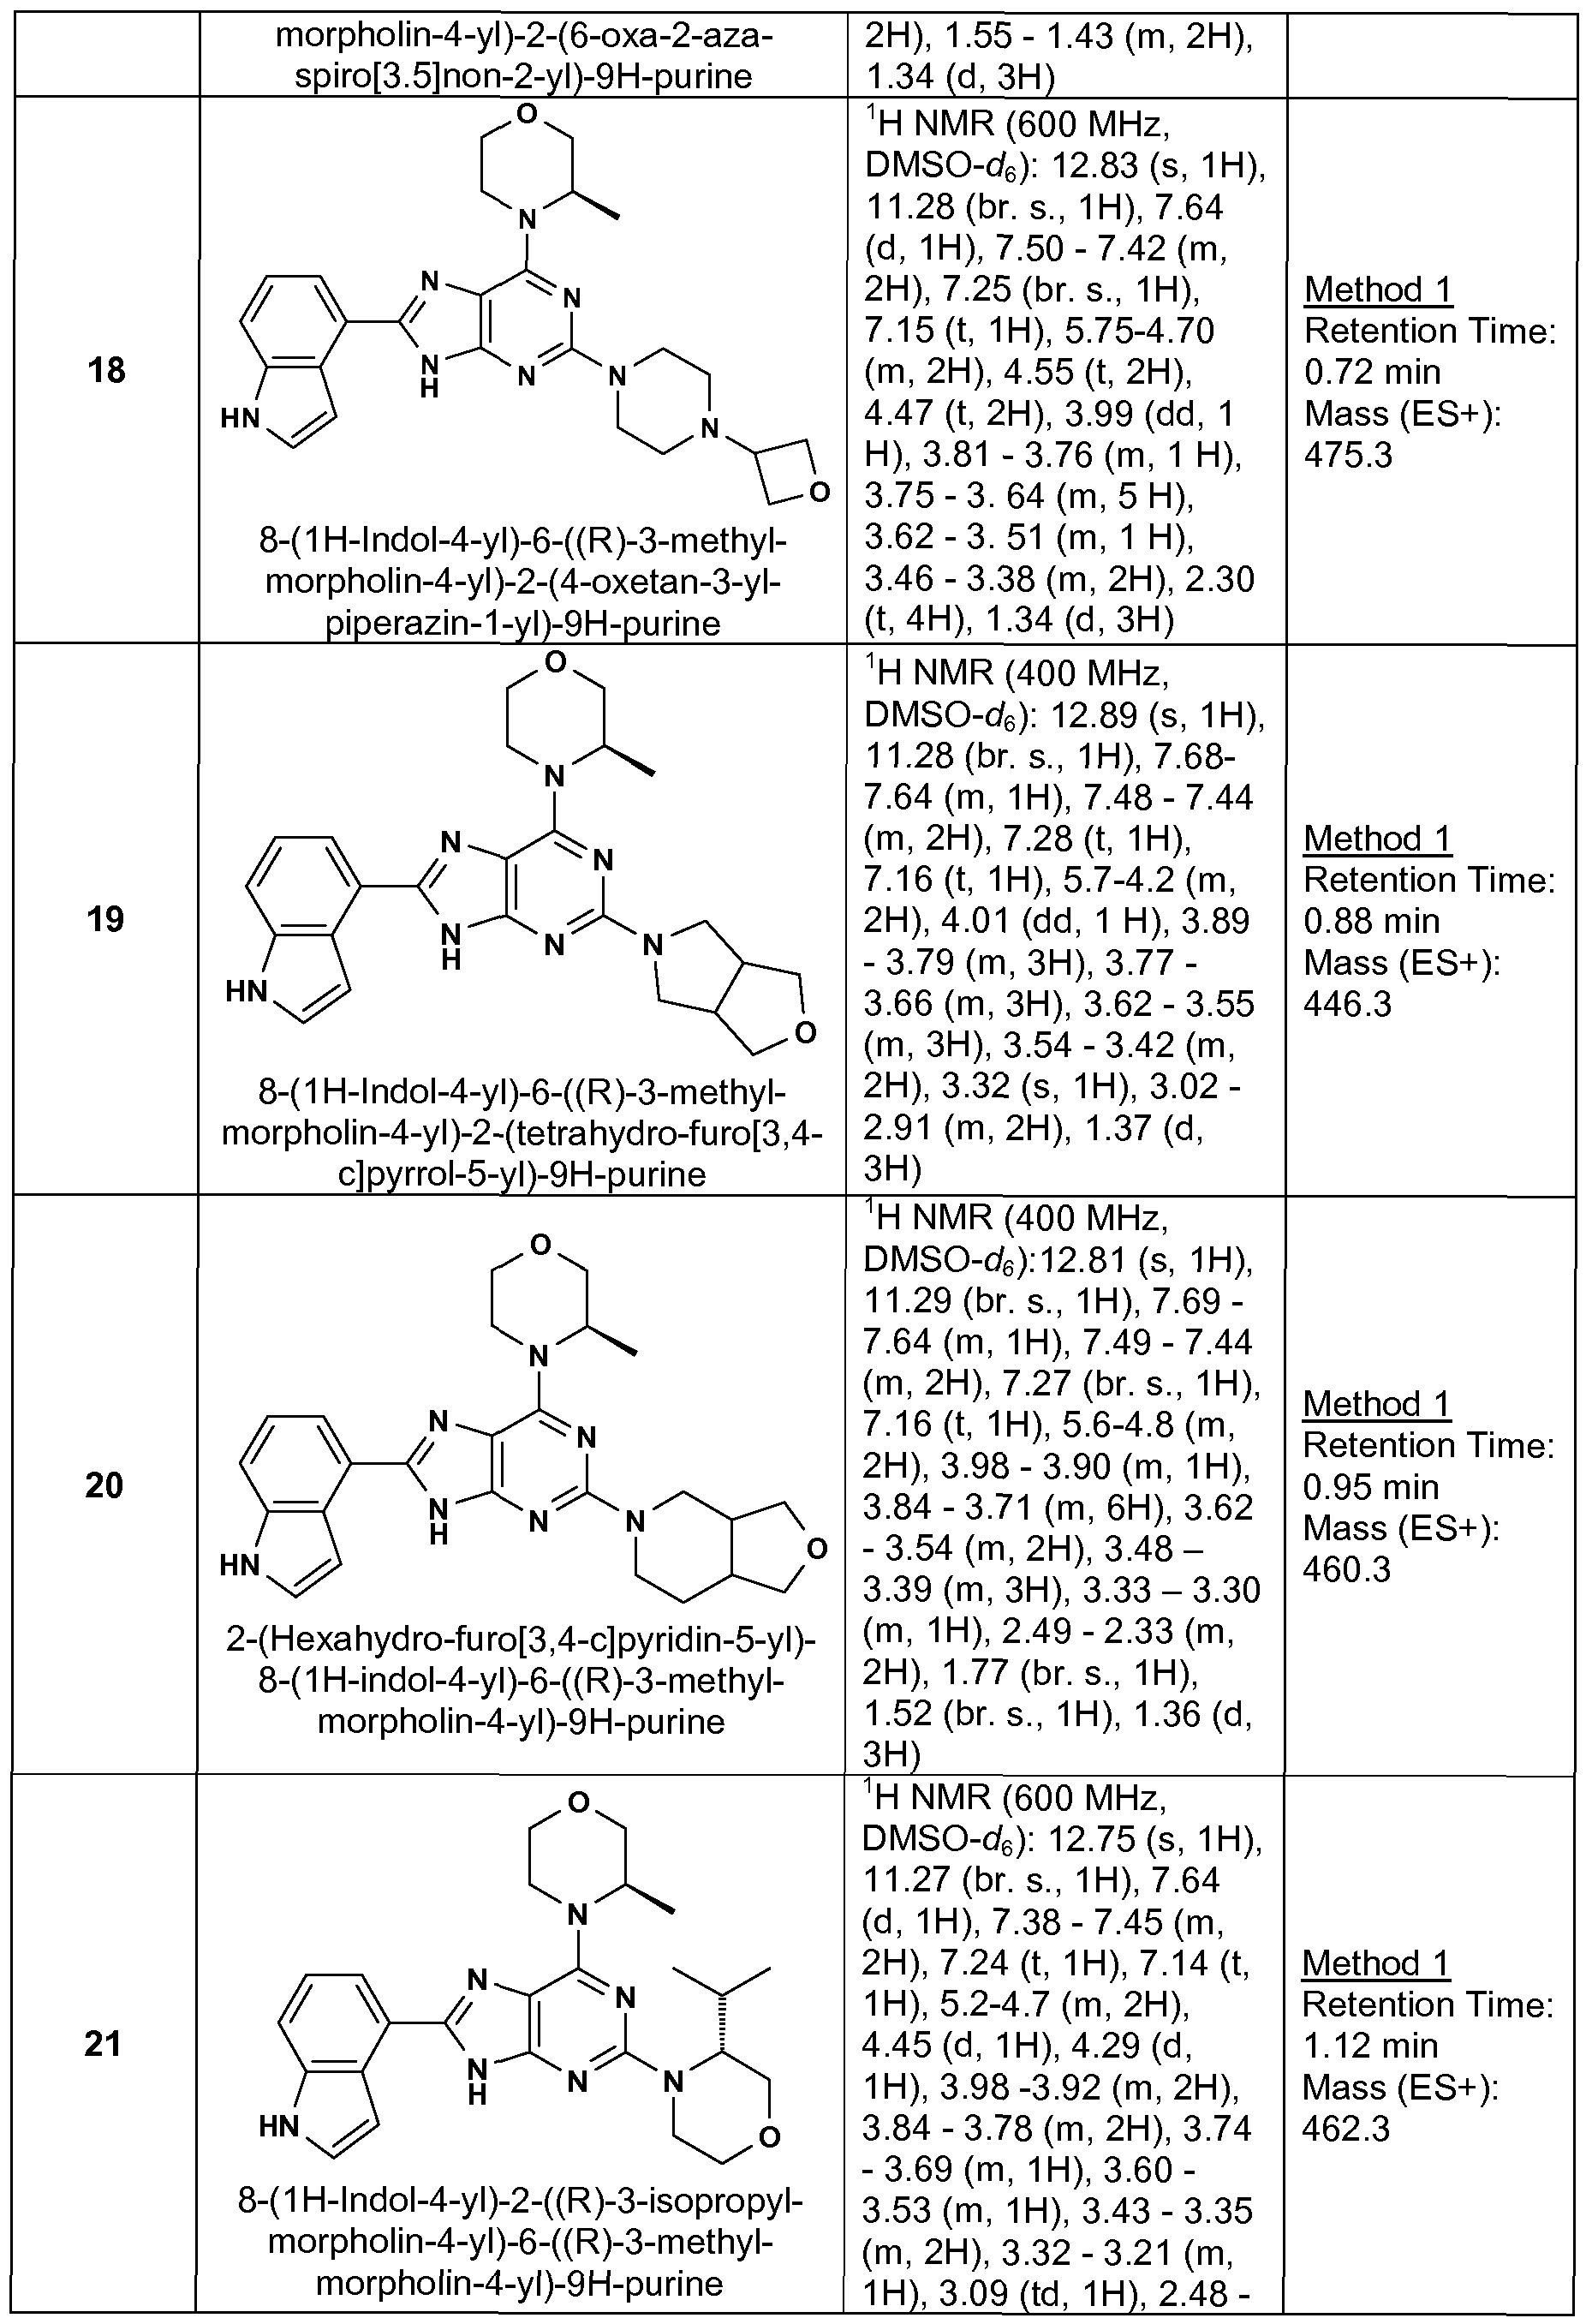 Wo2013061305a1 novel purine derivatives and their use in the figure imgf0000600001 fandeluxe Choice Image